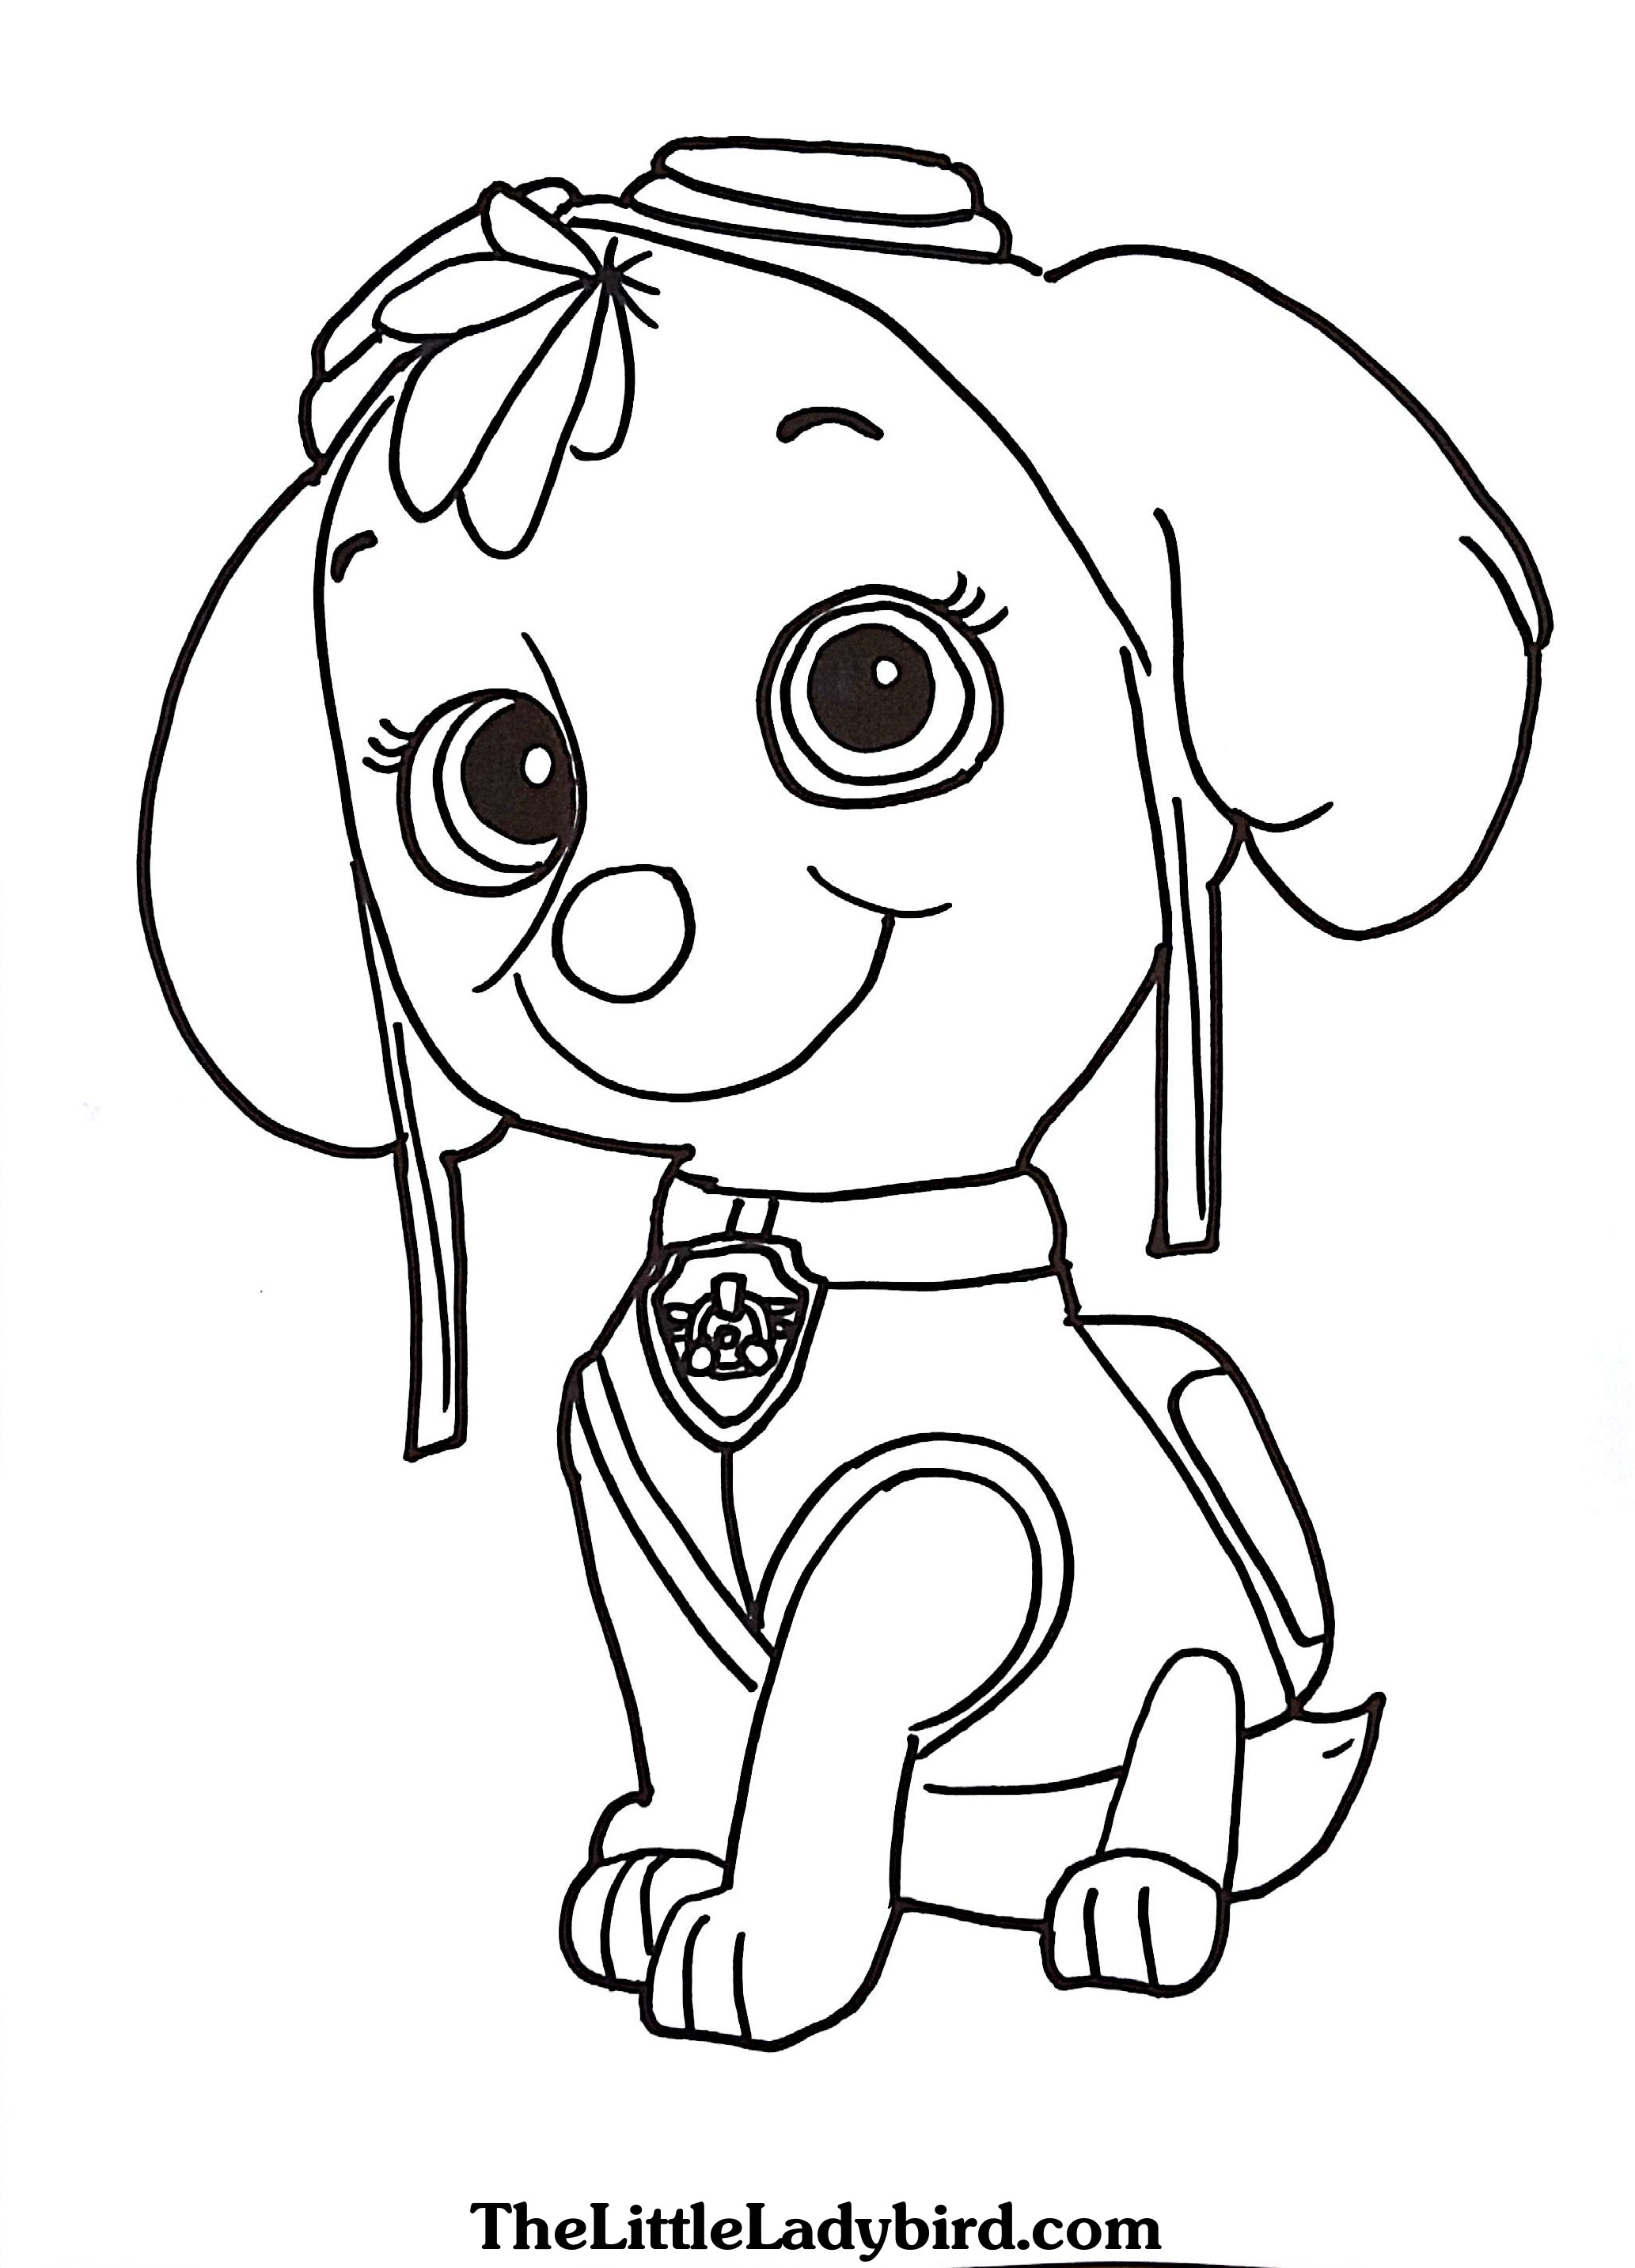 2066x2866 Paw Patrol Coloring Pages